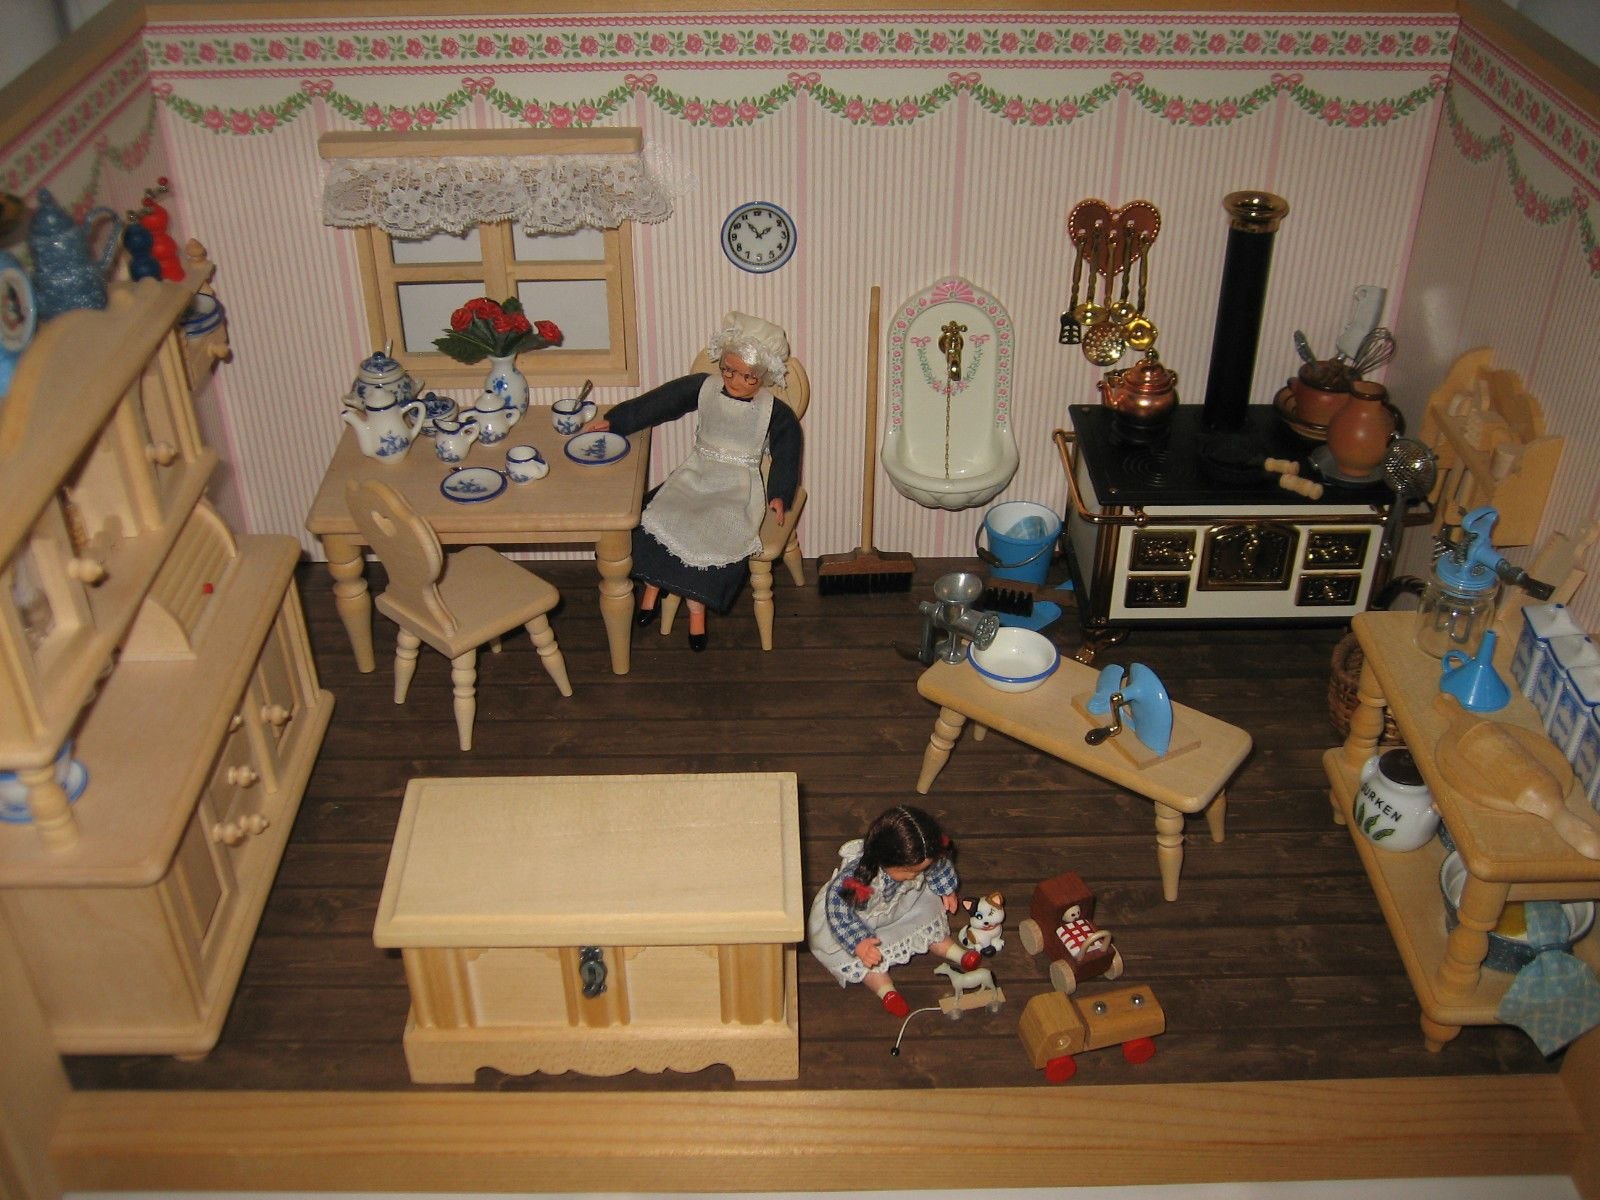 nostalgische puppenstube k che miniatur m bel geschirr bodo hennig wie neu ebay. Black Bedroom Furniture Sets. Home Design Ideas